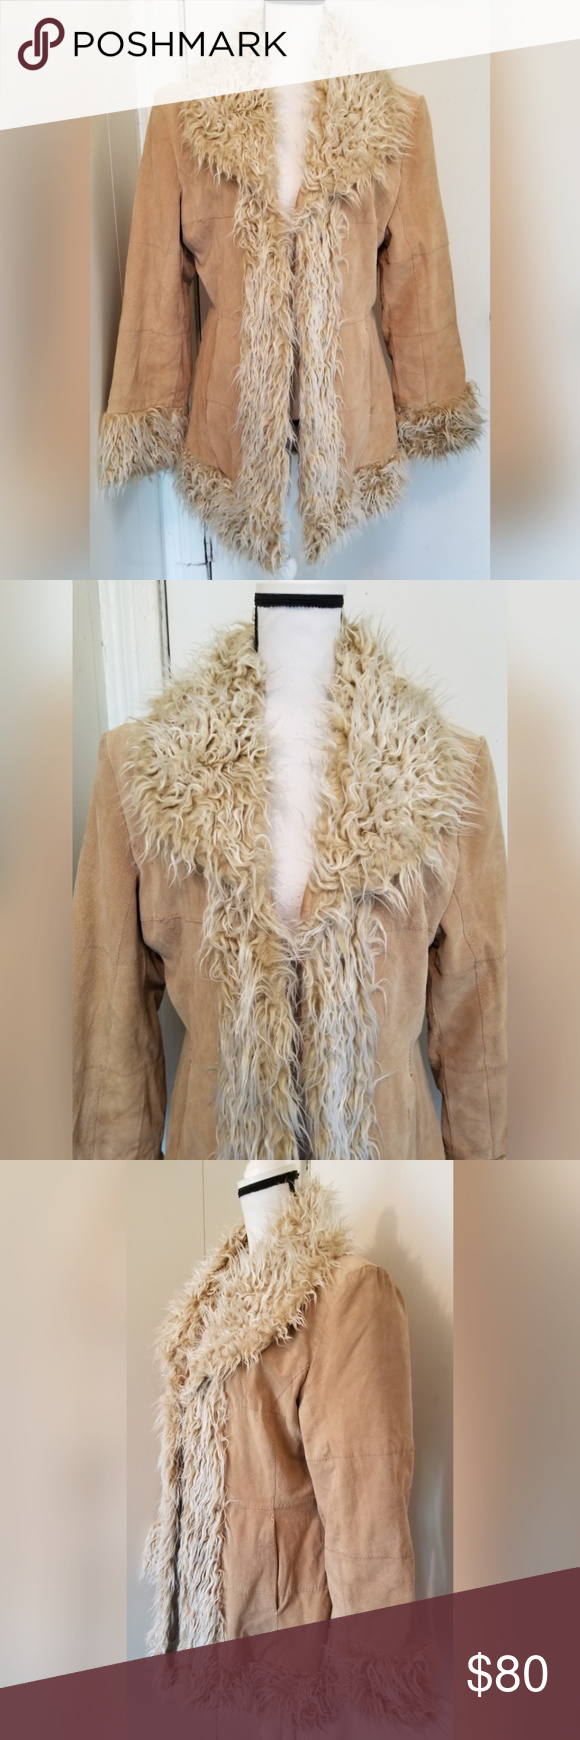 b109cfe955d VINTAGE Tan Coat Genuine Leather Faux Fur Trim Jennyfer J vintage genuine  leather and faux fur coat. From the 90s. Women s size large. True to size.